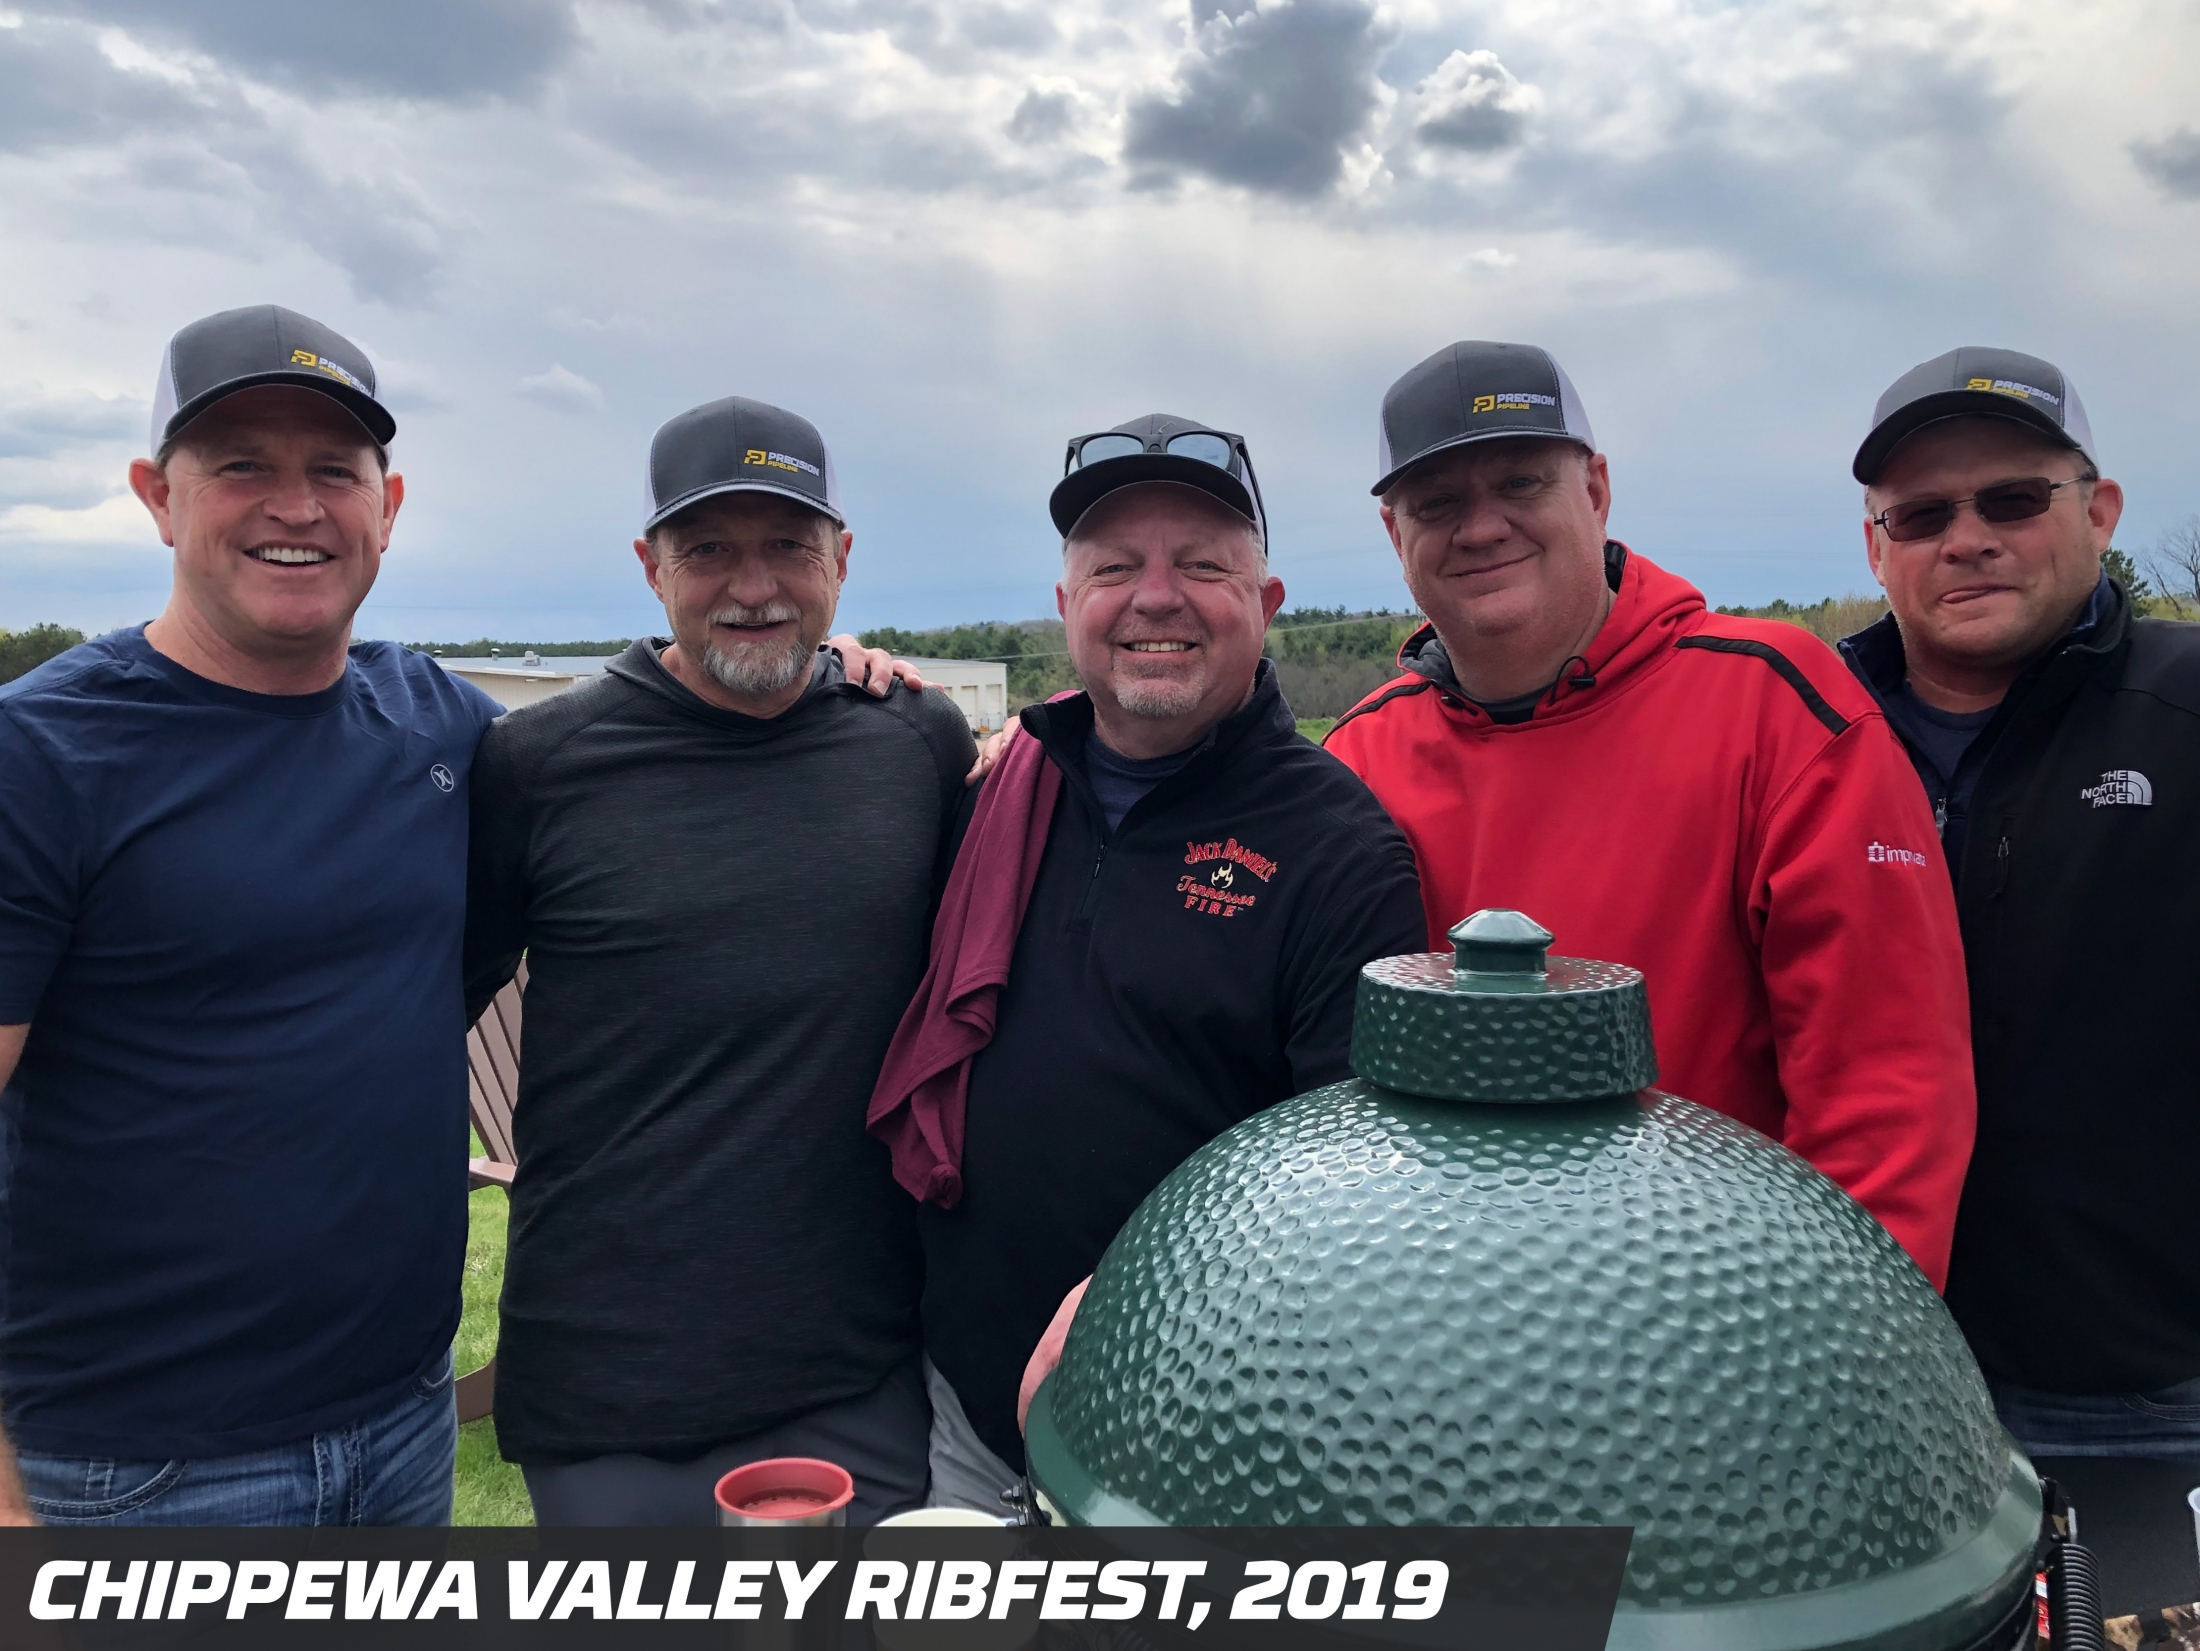 Precision Pipeline Community Involvement: Chippewa Valley Ribfest 2019